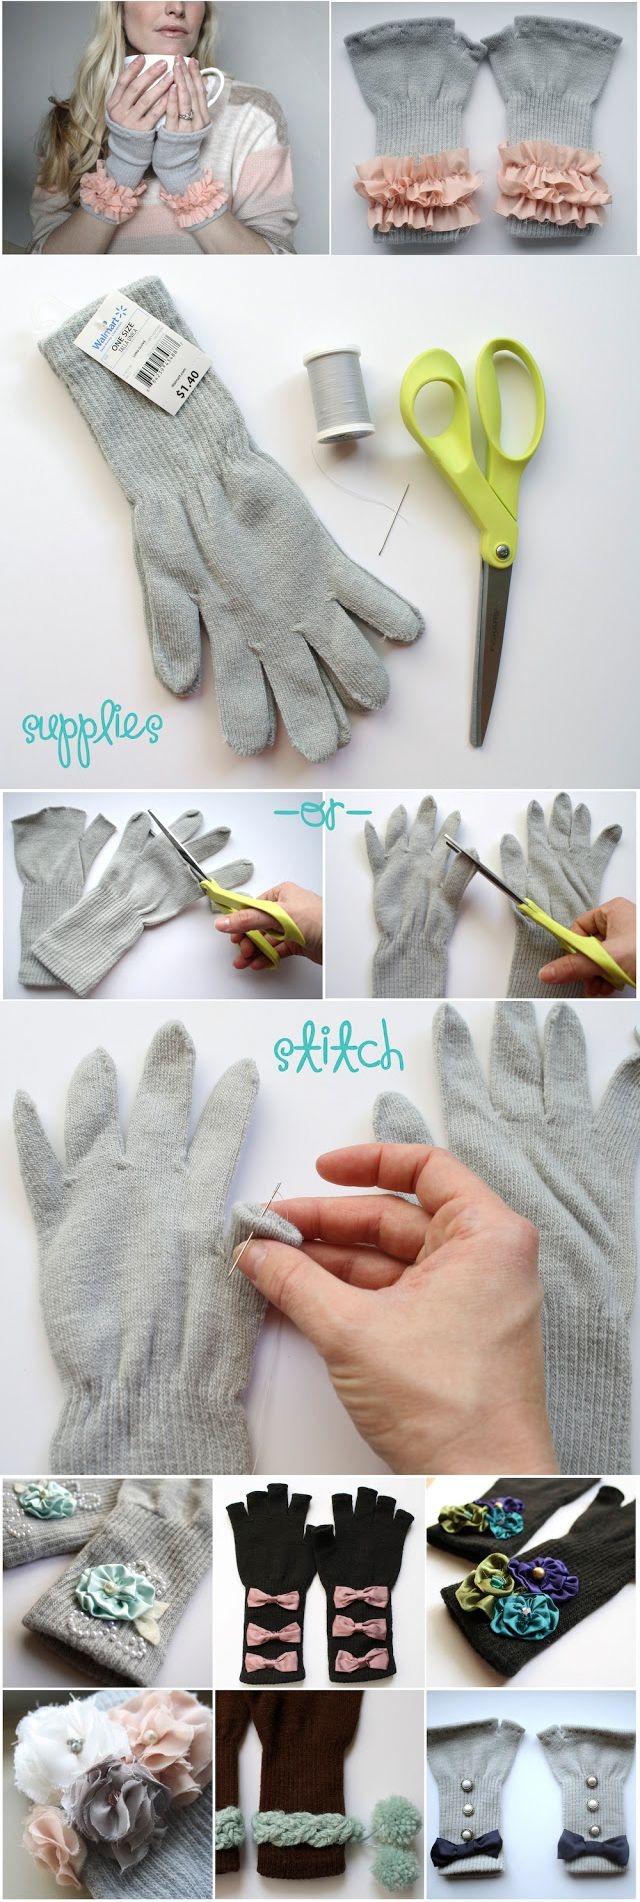 10 diy projects to make winter crafts pretty designs